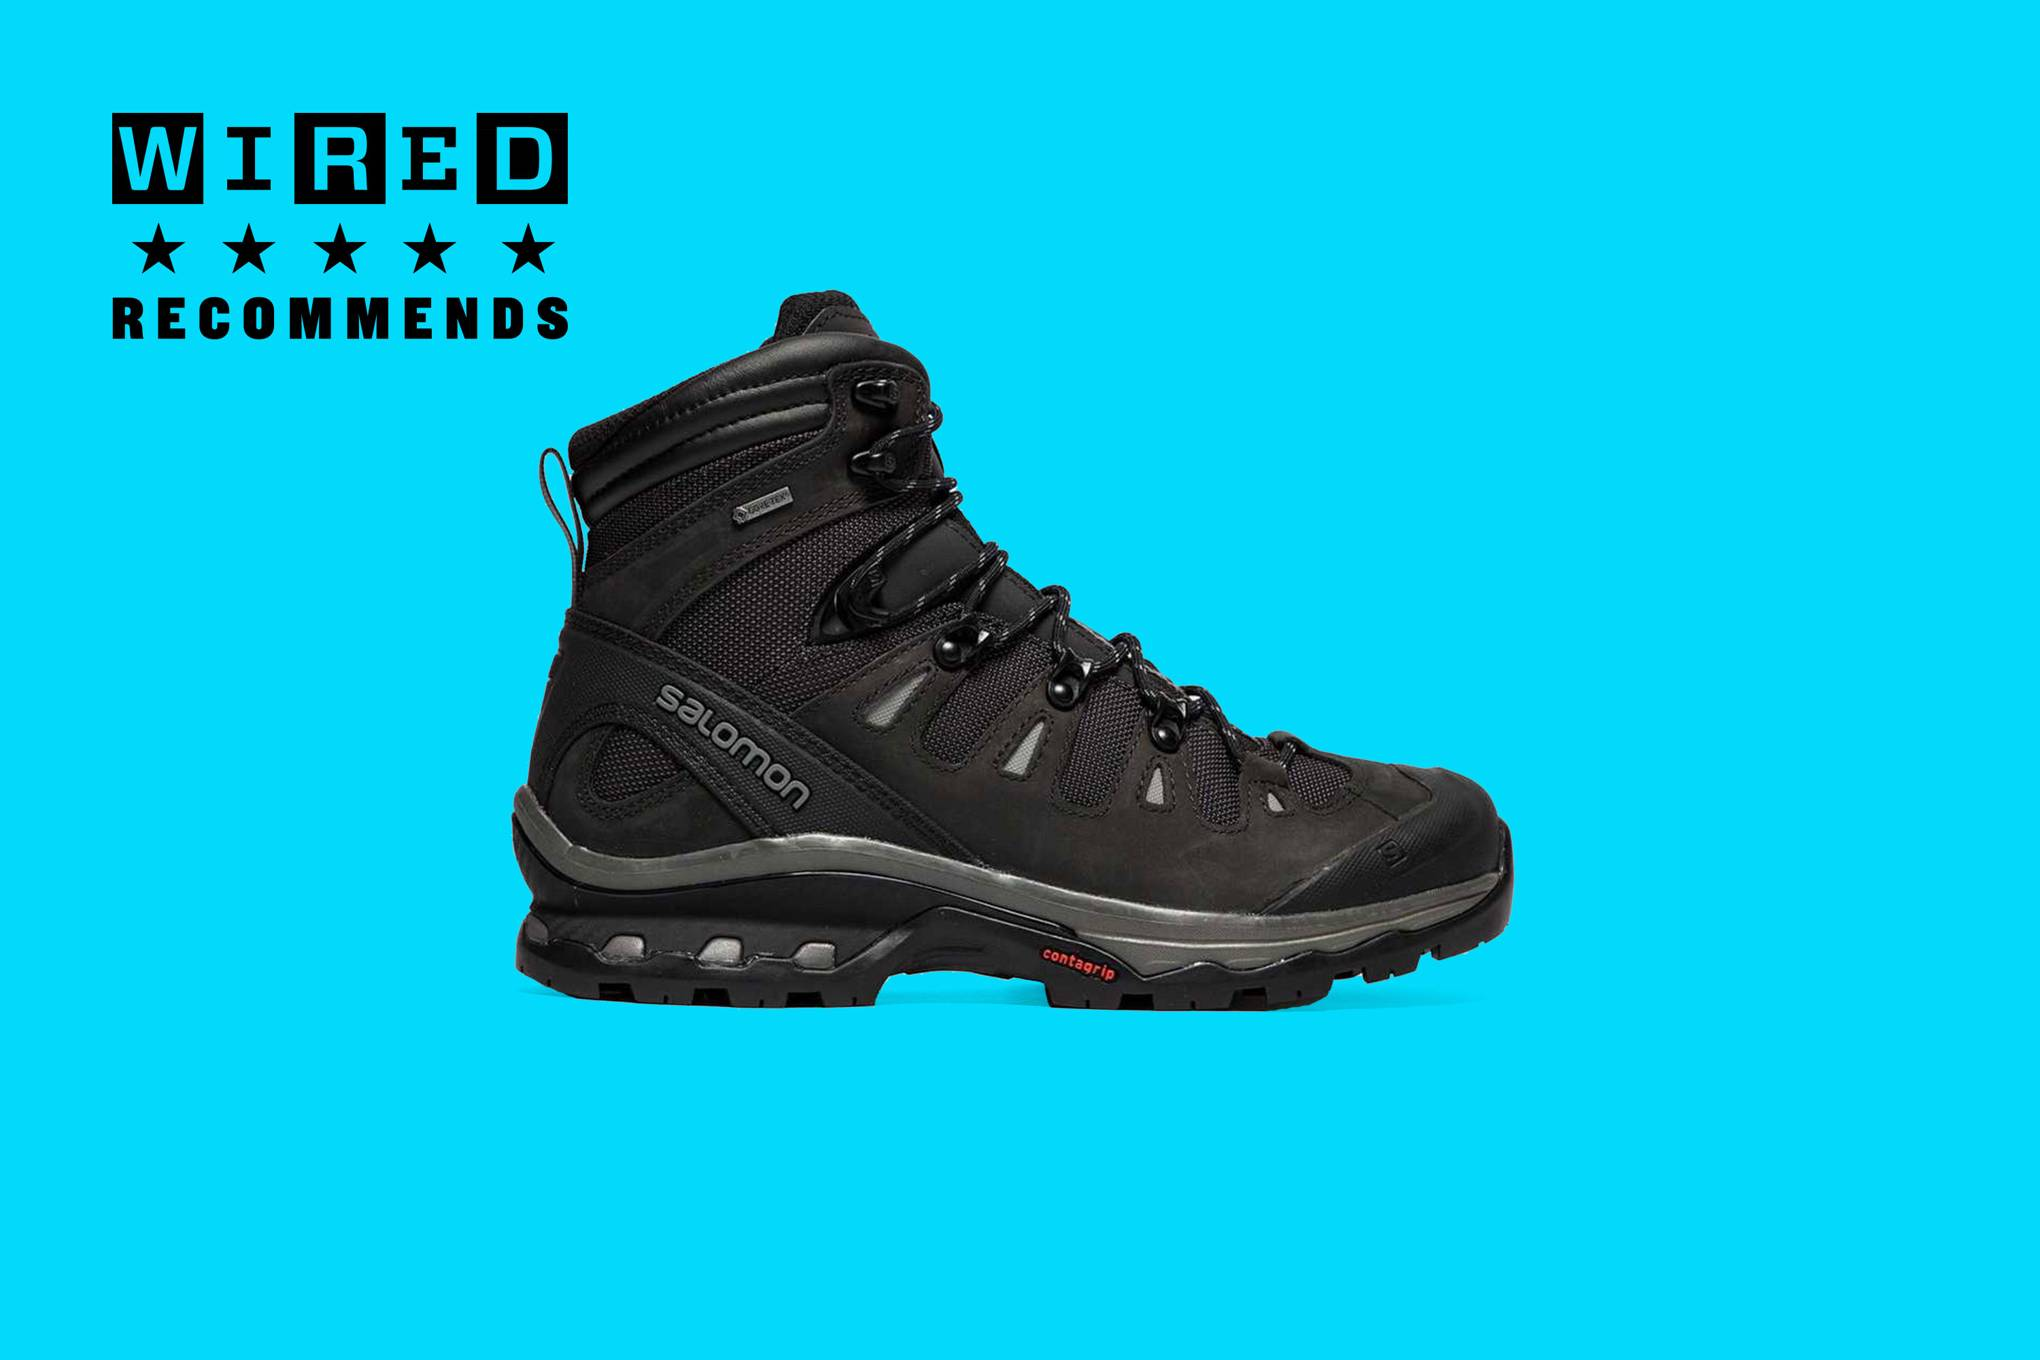 4faf5a2d5c1 Best Walking Boots 2019: The best hiking boots for men and women ...